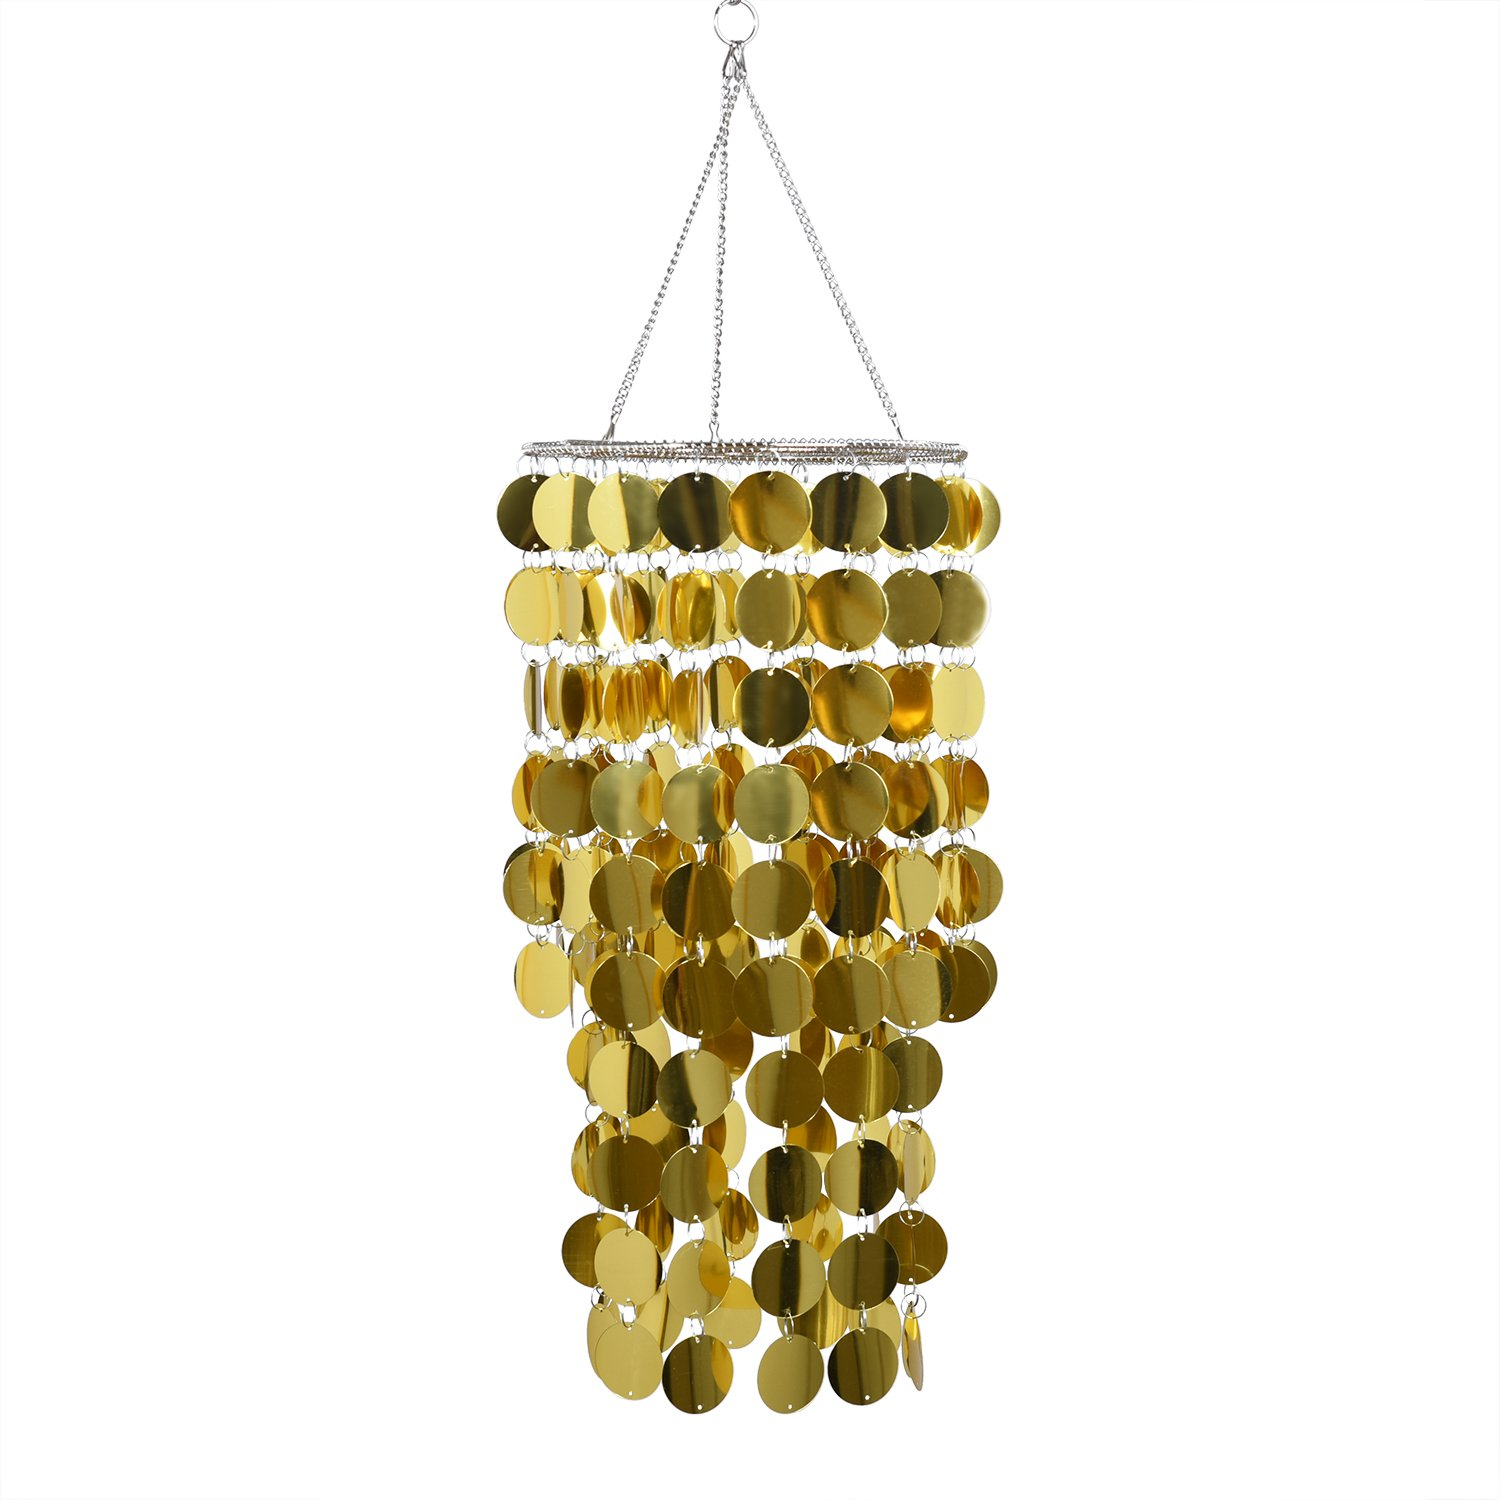 FlavorThings Gold Bling Hanging Chandelier, Spangle Chandelier,Great idea for Wedding Centerpieces Decorations and Any Event Party Home Decor (Gold)